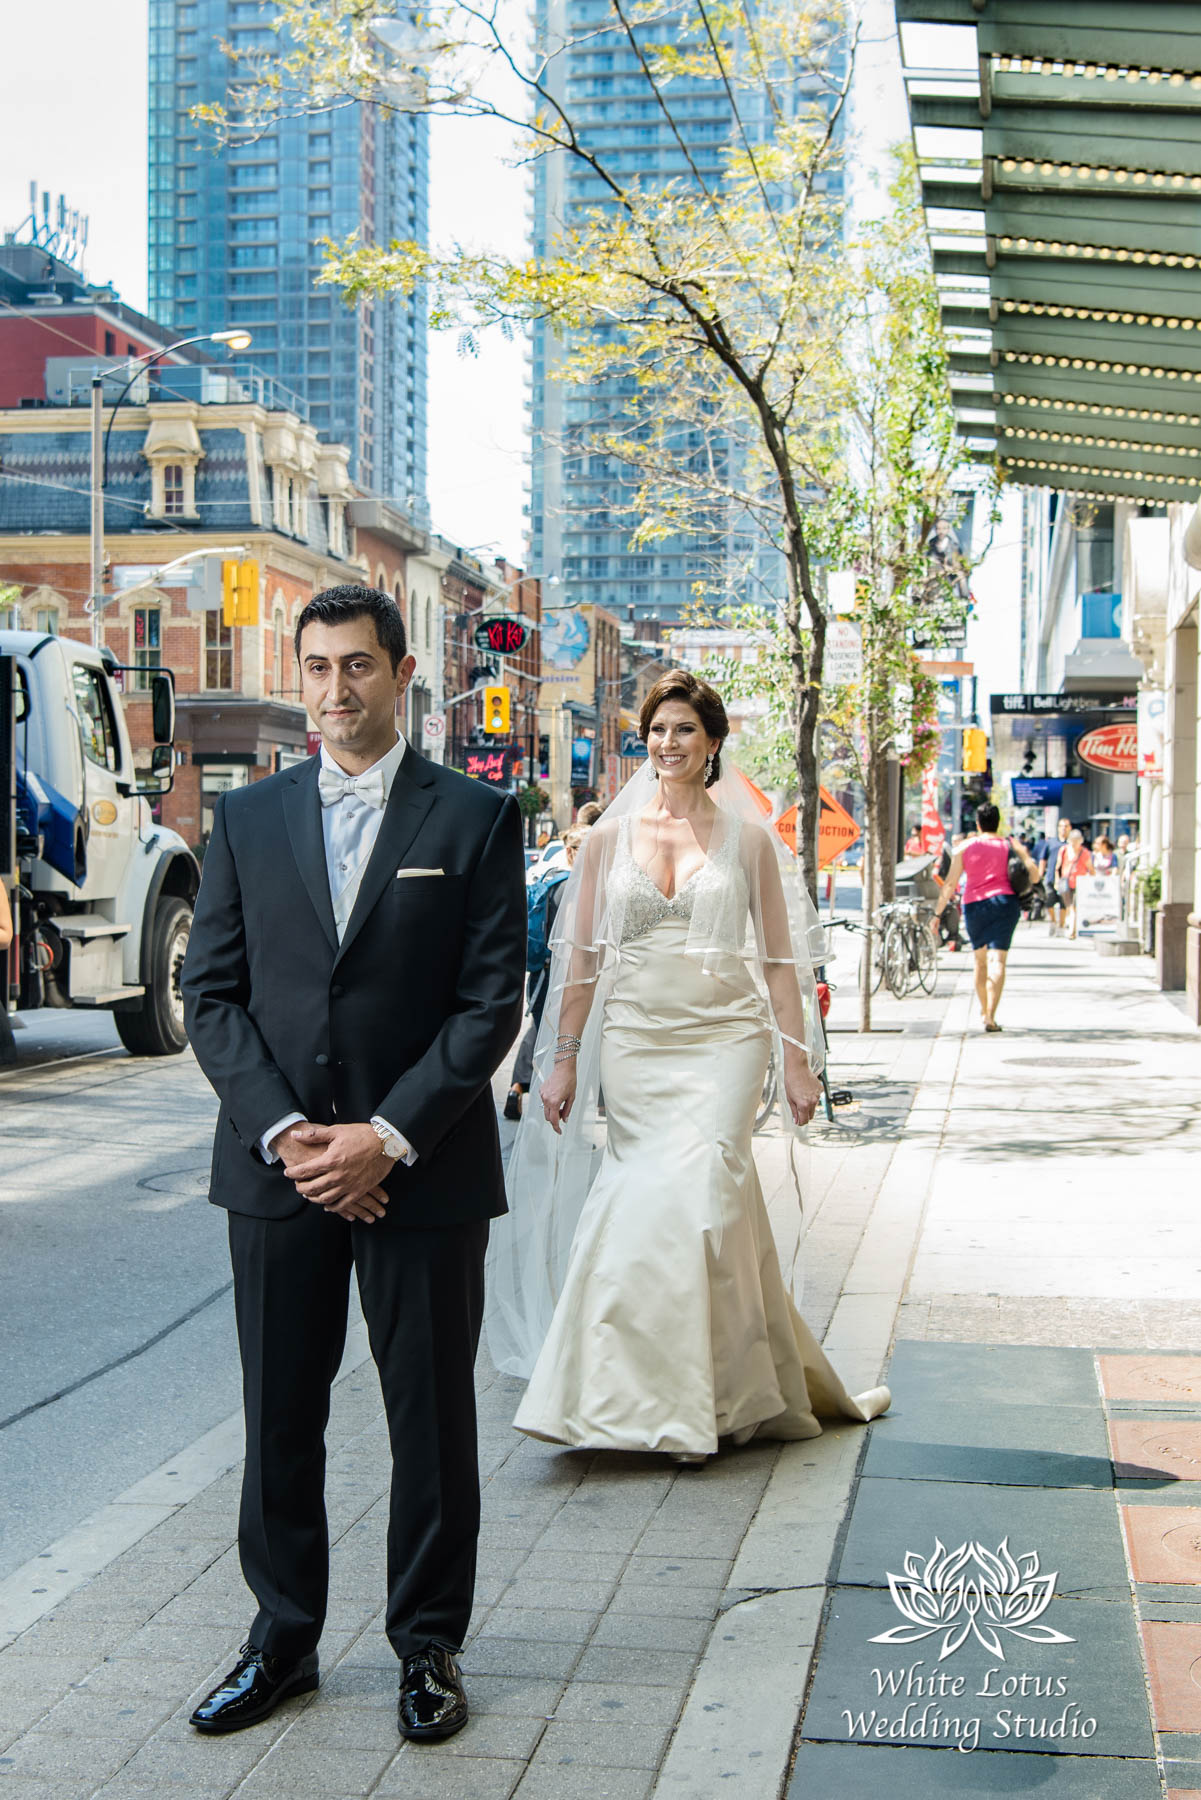 061 - Wedding - Toronto - First Look - Reveal - PW